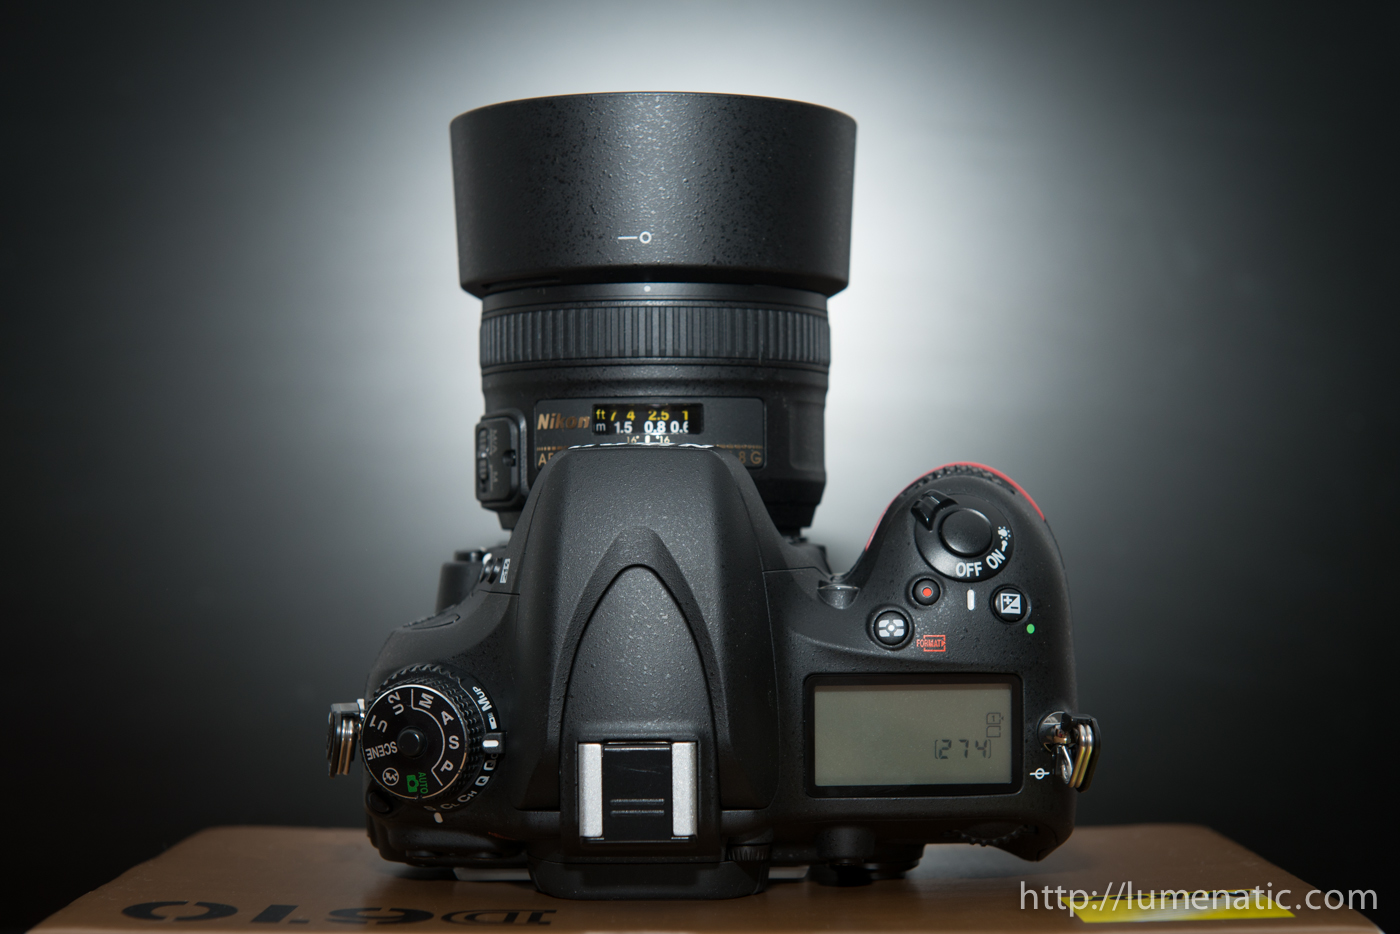 Why I chose a D610 over a D7100